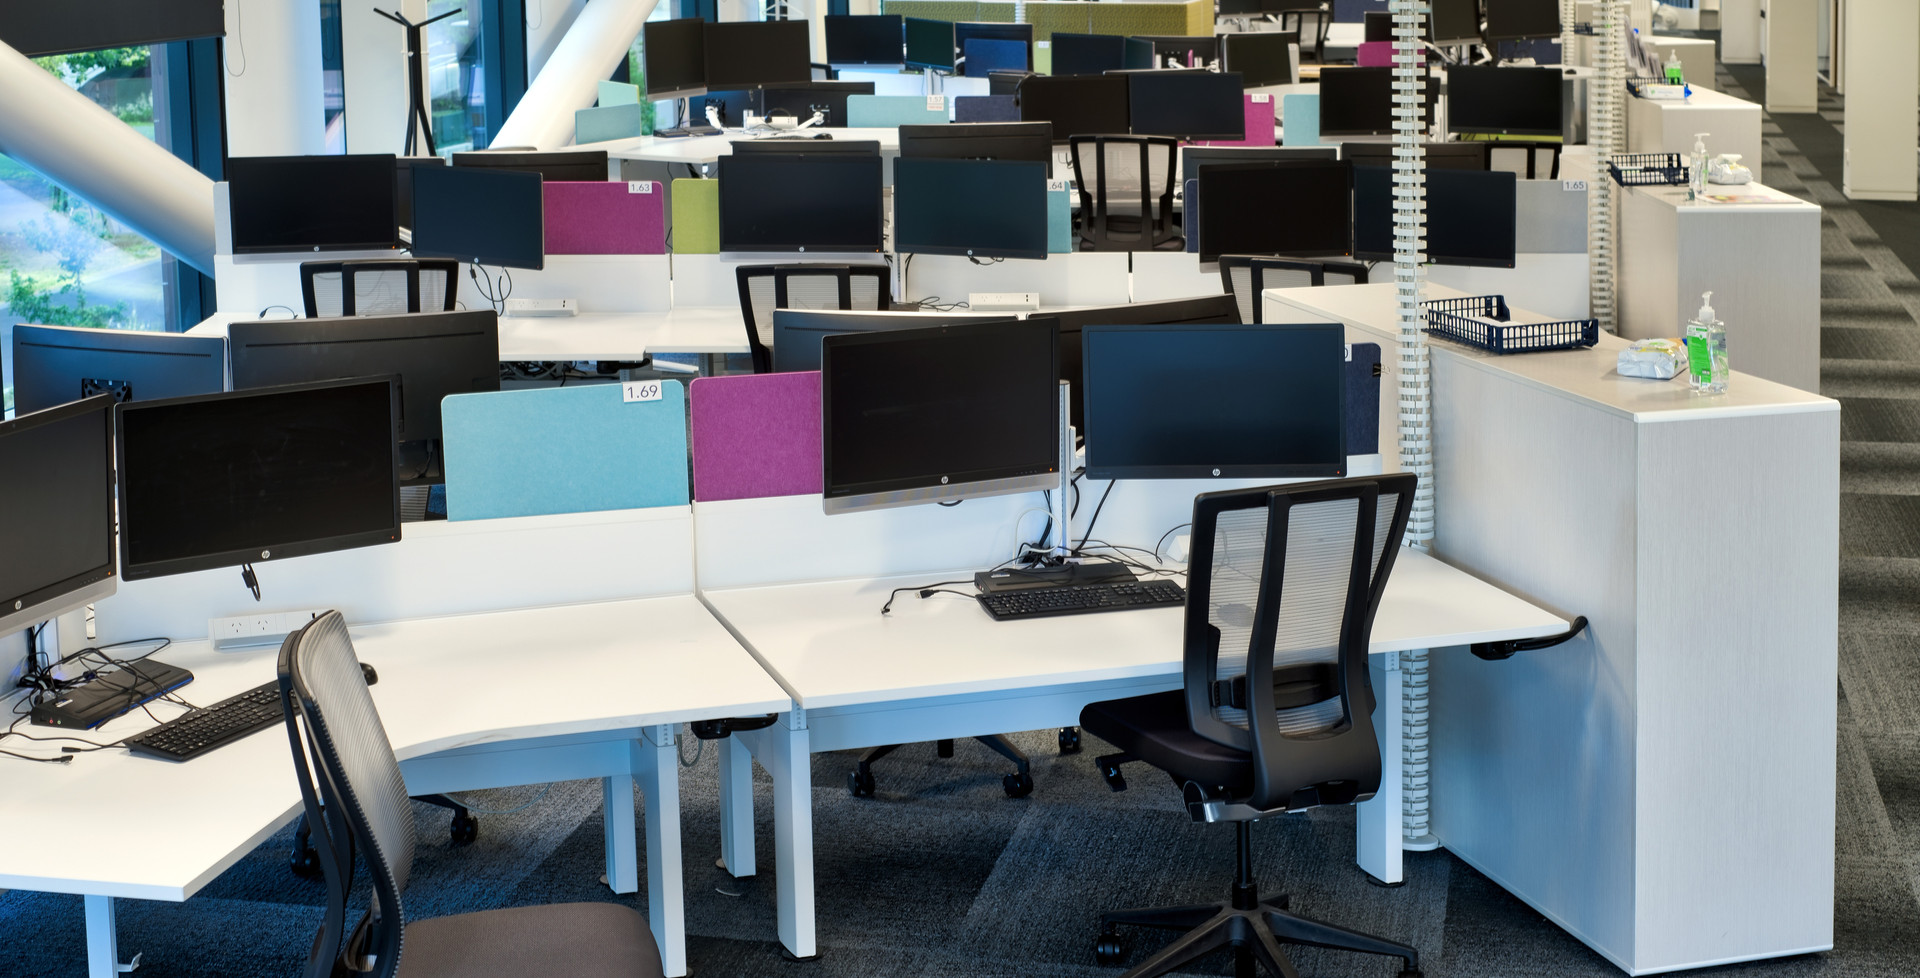 Typical Open Plan Working Space